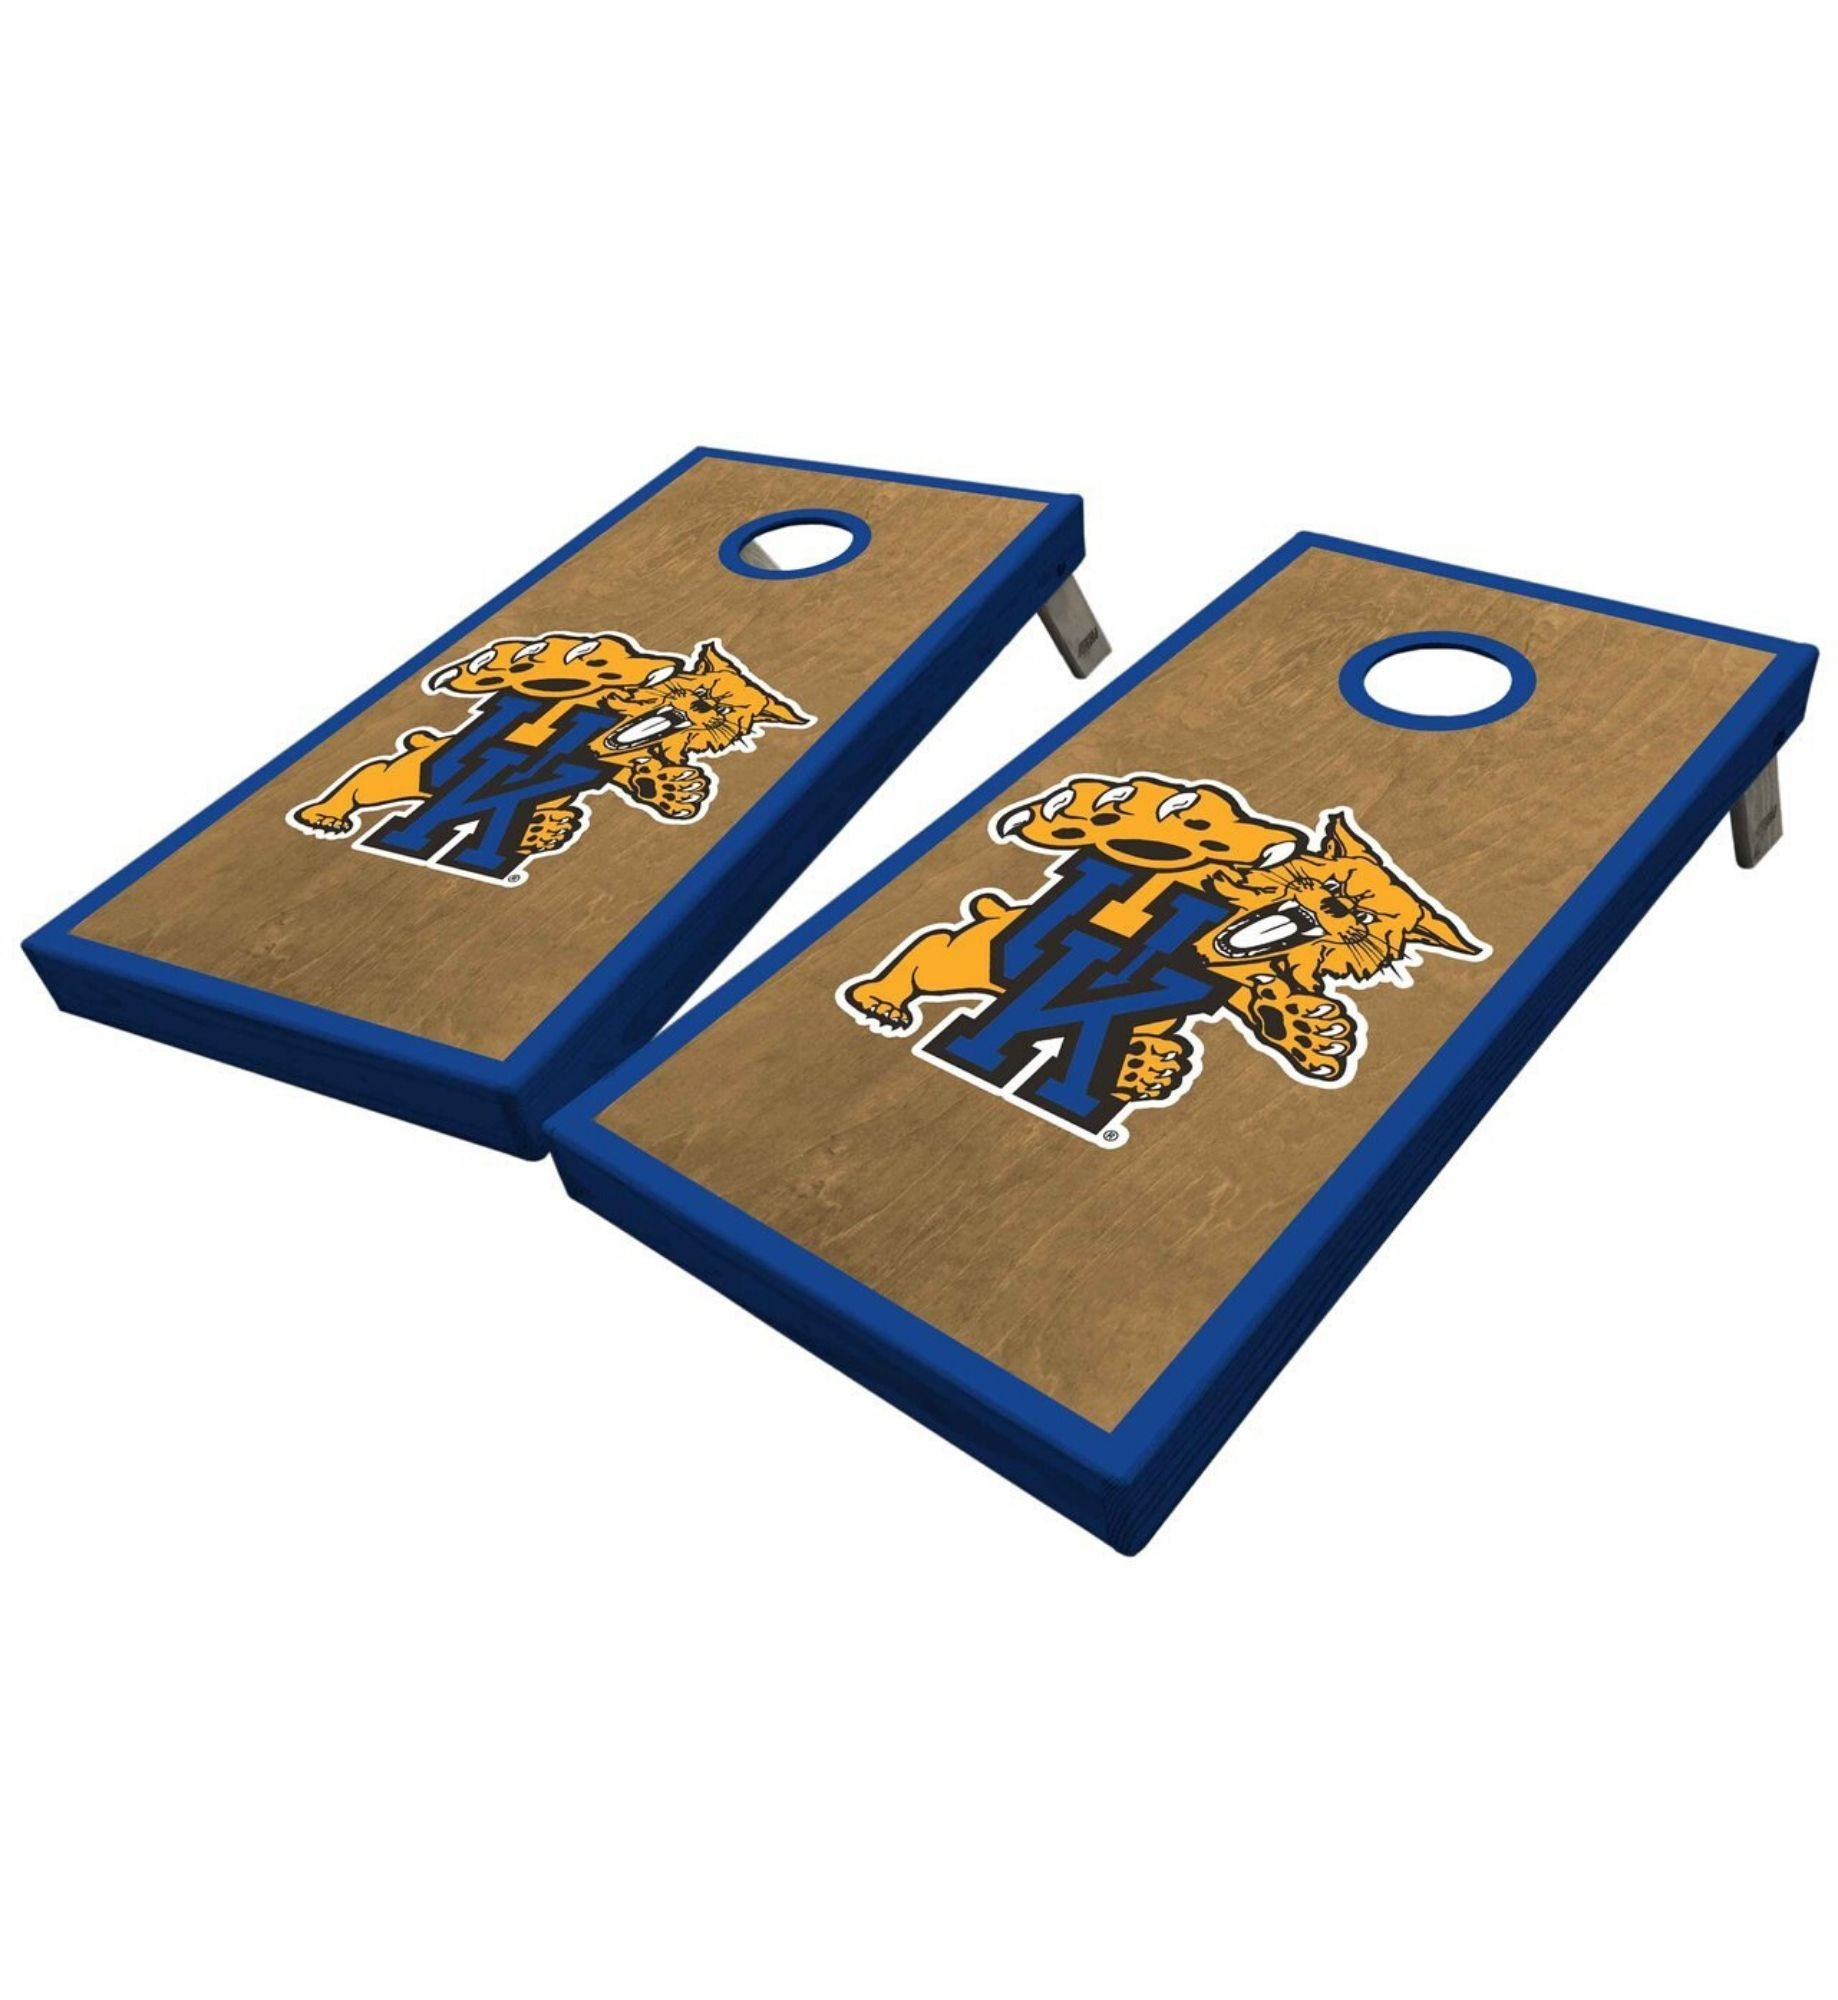 Regulation university of Kentucky cornhole boards. Customizable premium quality cornhole set.